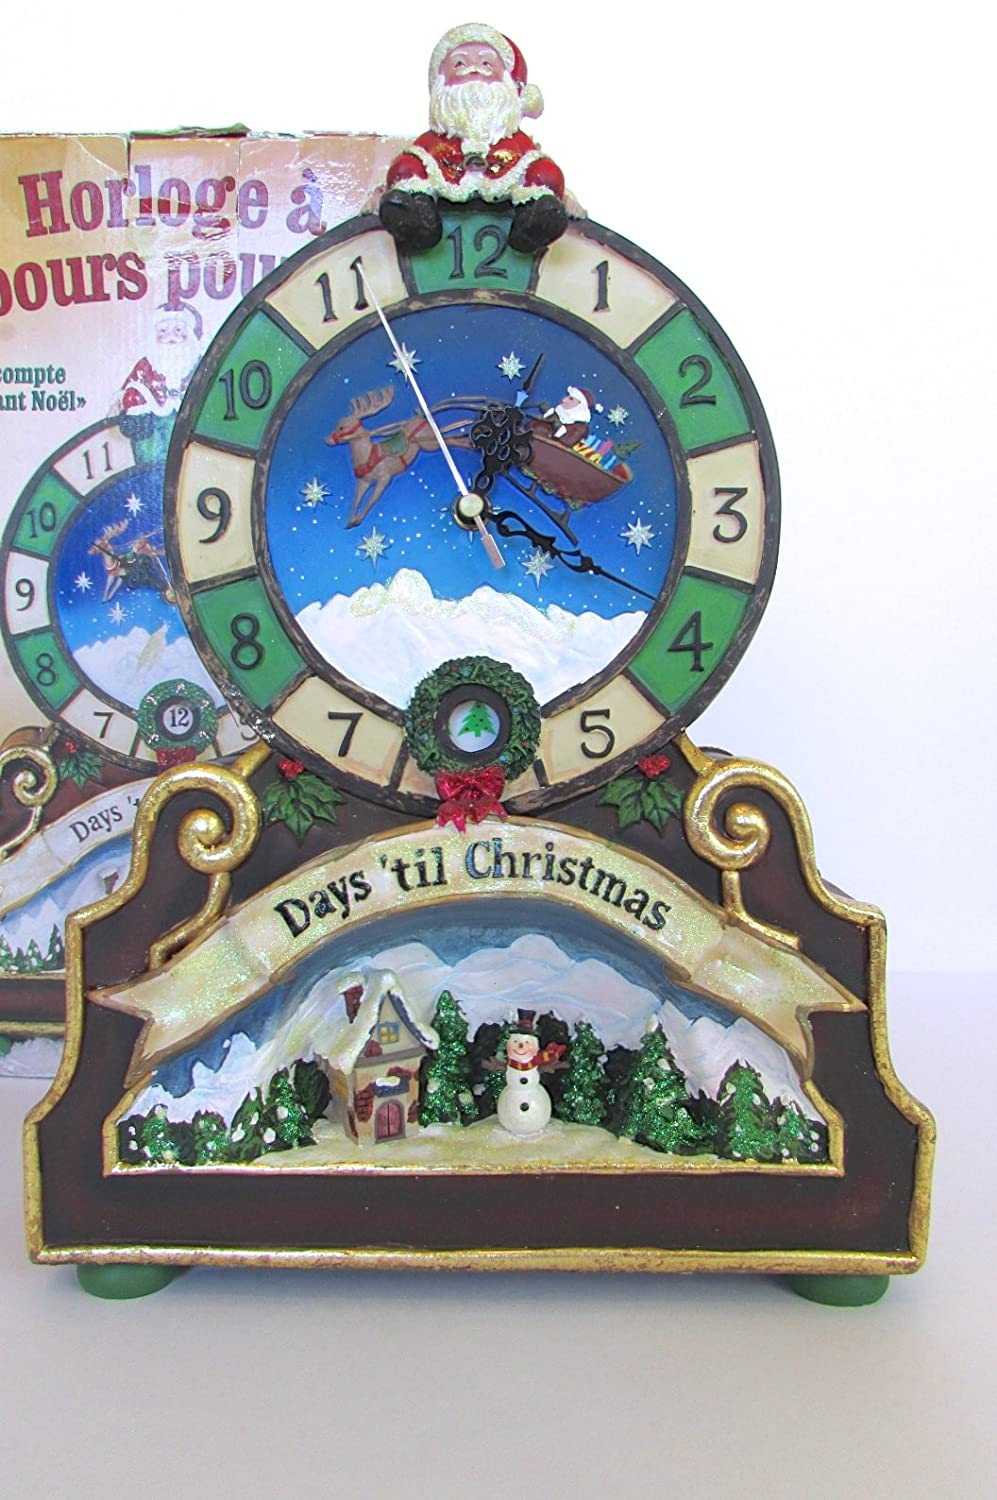 Countdown To Christmas Clock.Christmas Countdown Clock With 24 Days Til Christmas Counter